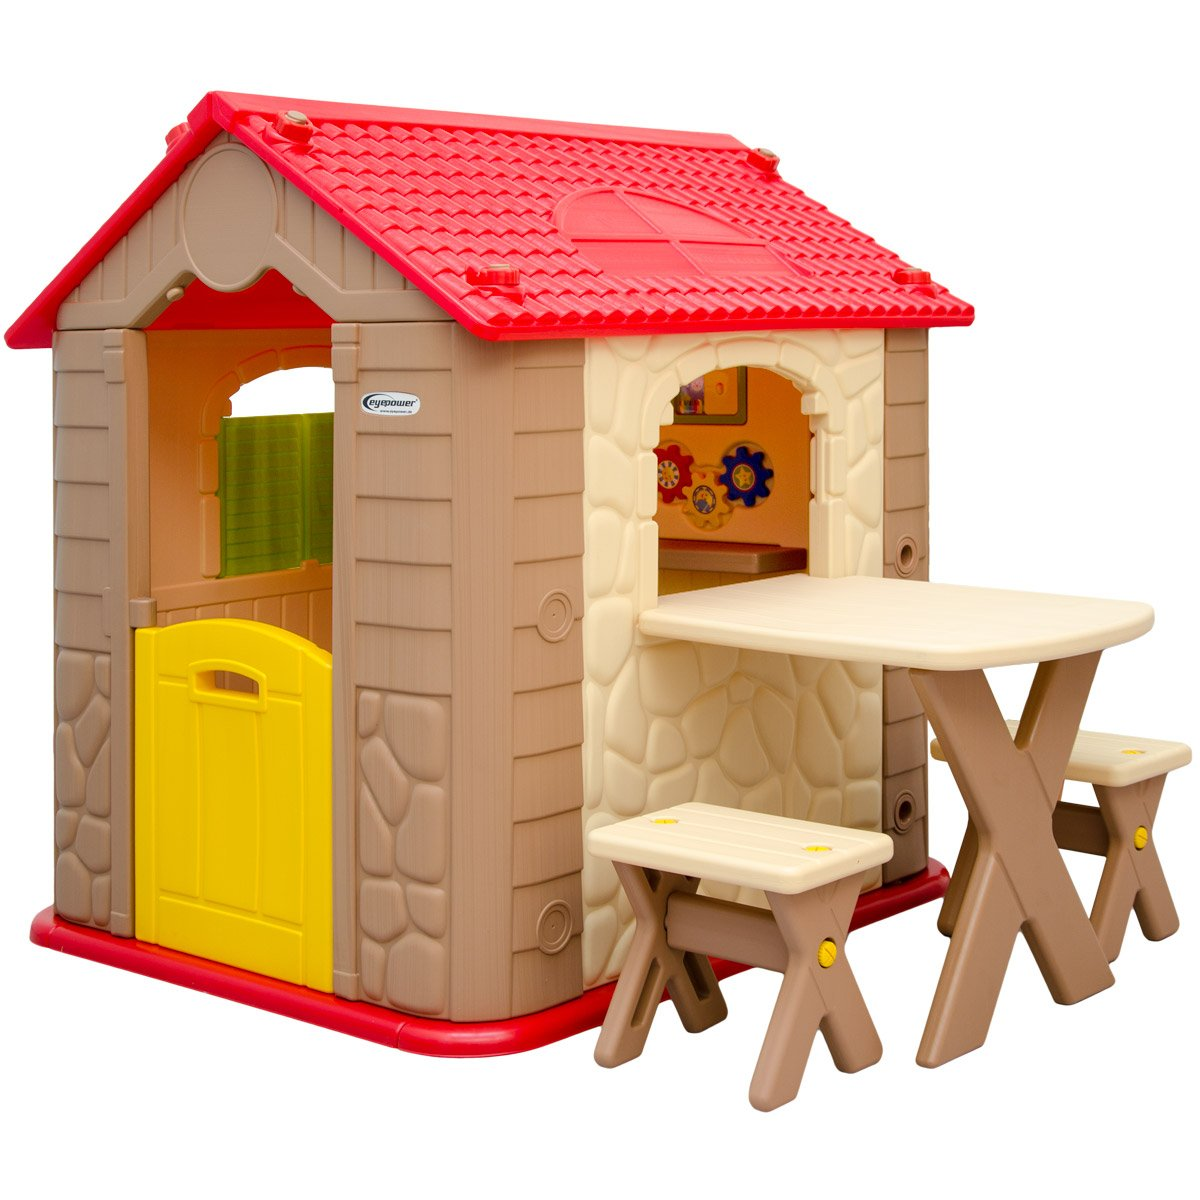 Childrens Playhouse + 1 Table + 2 Benches | For Boys And Girls | House Made